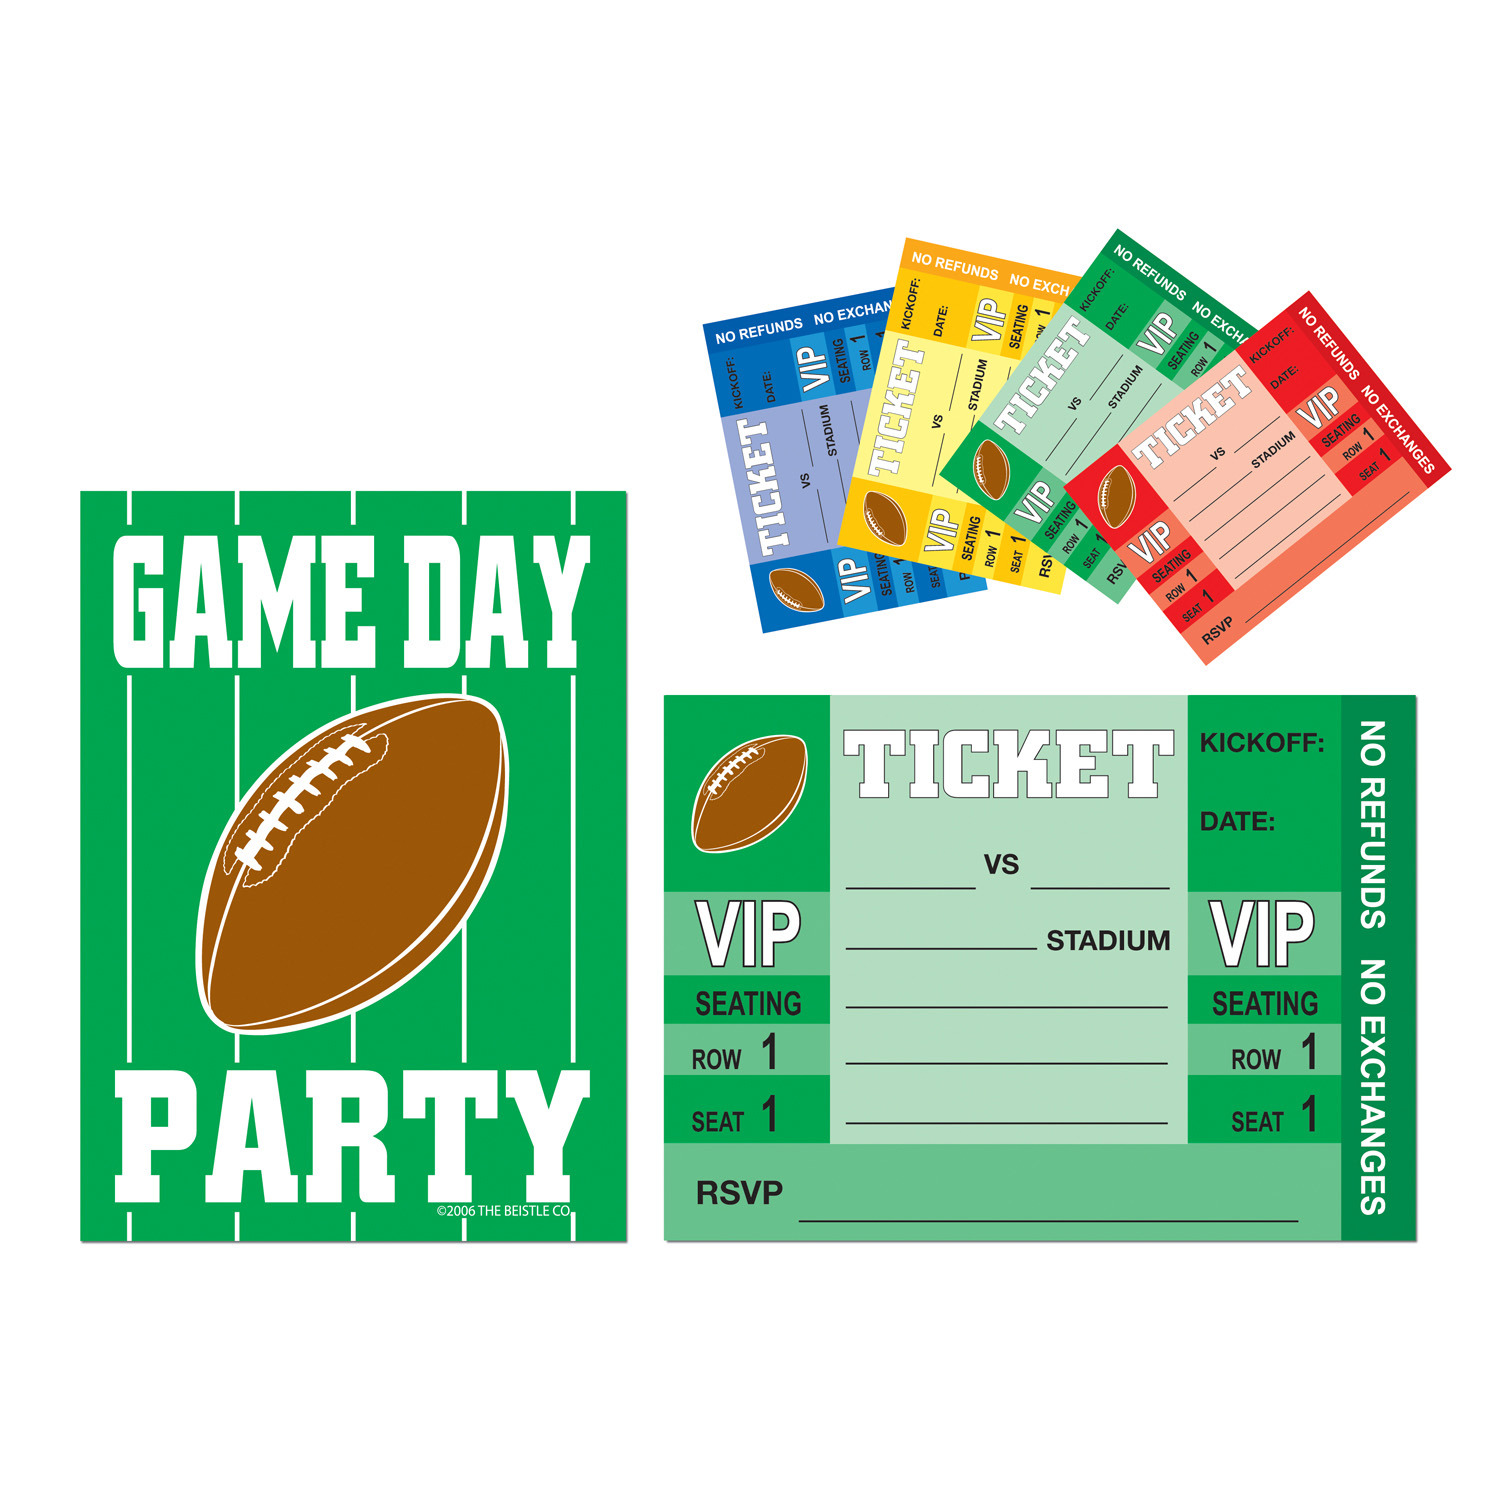 Game Day Football Invitations (Pack of 96) Game Day Football Invitations, football, superbowl, game day, wholesale, inexpensive, bulk